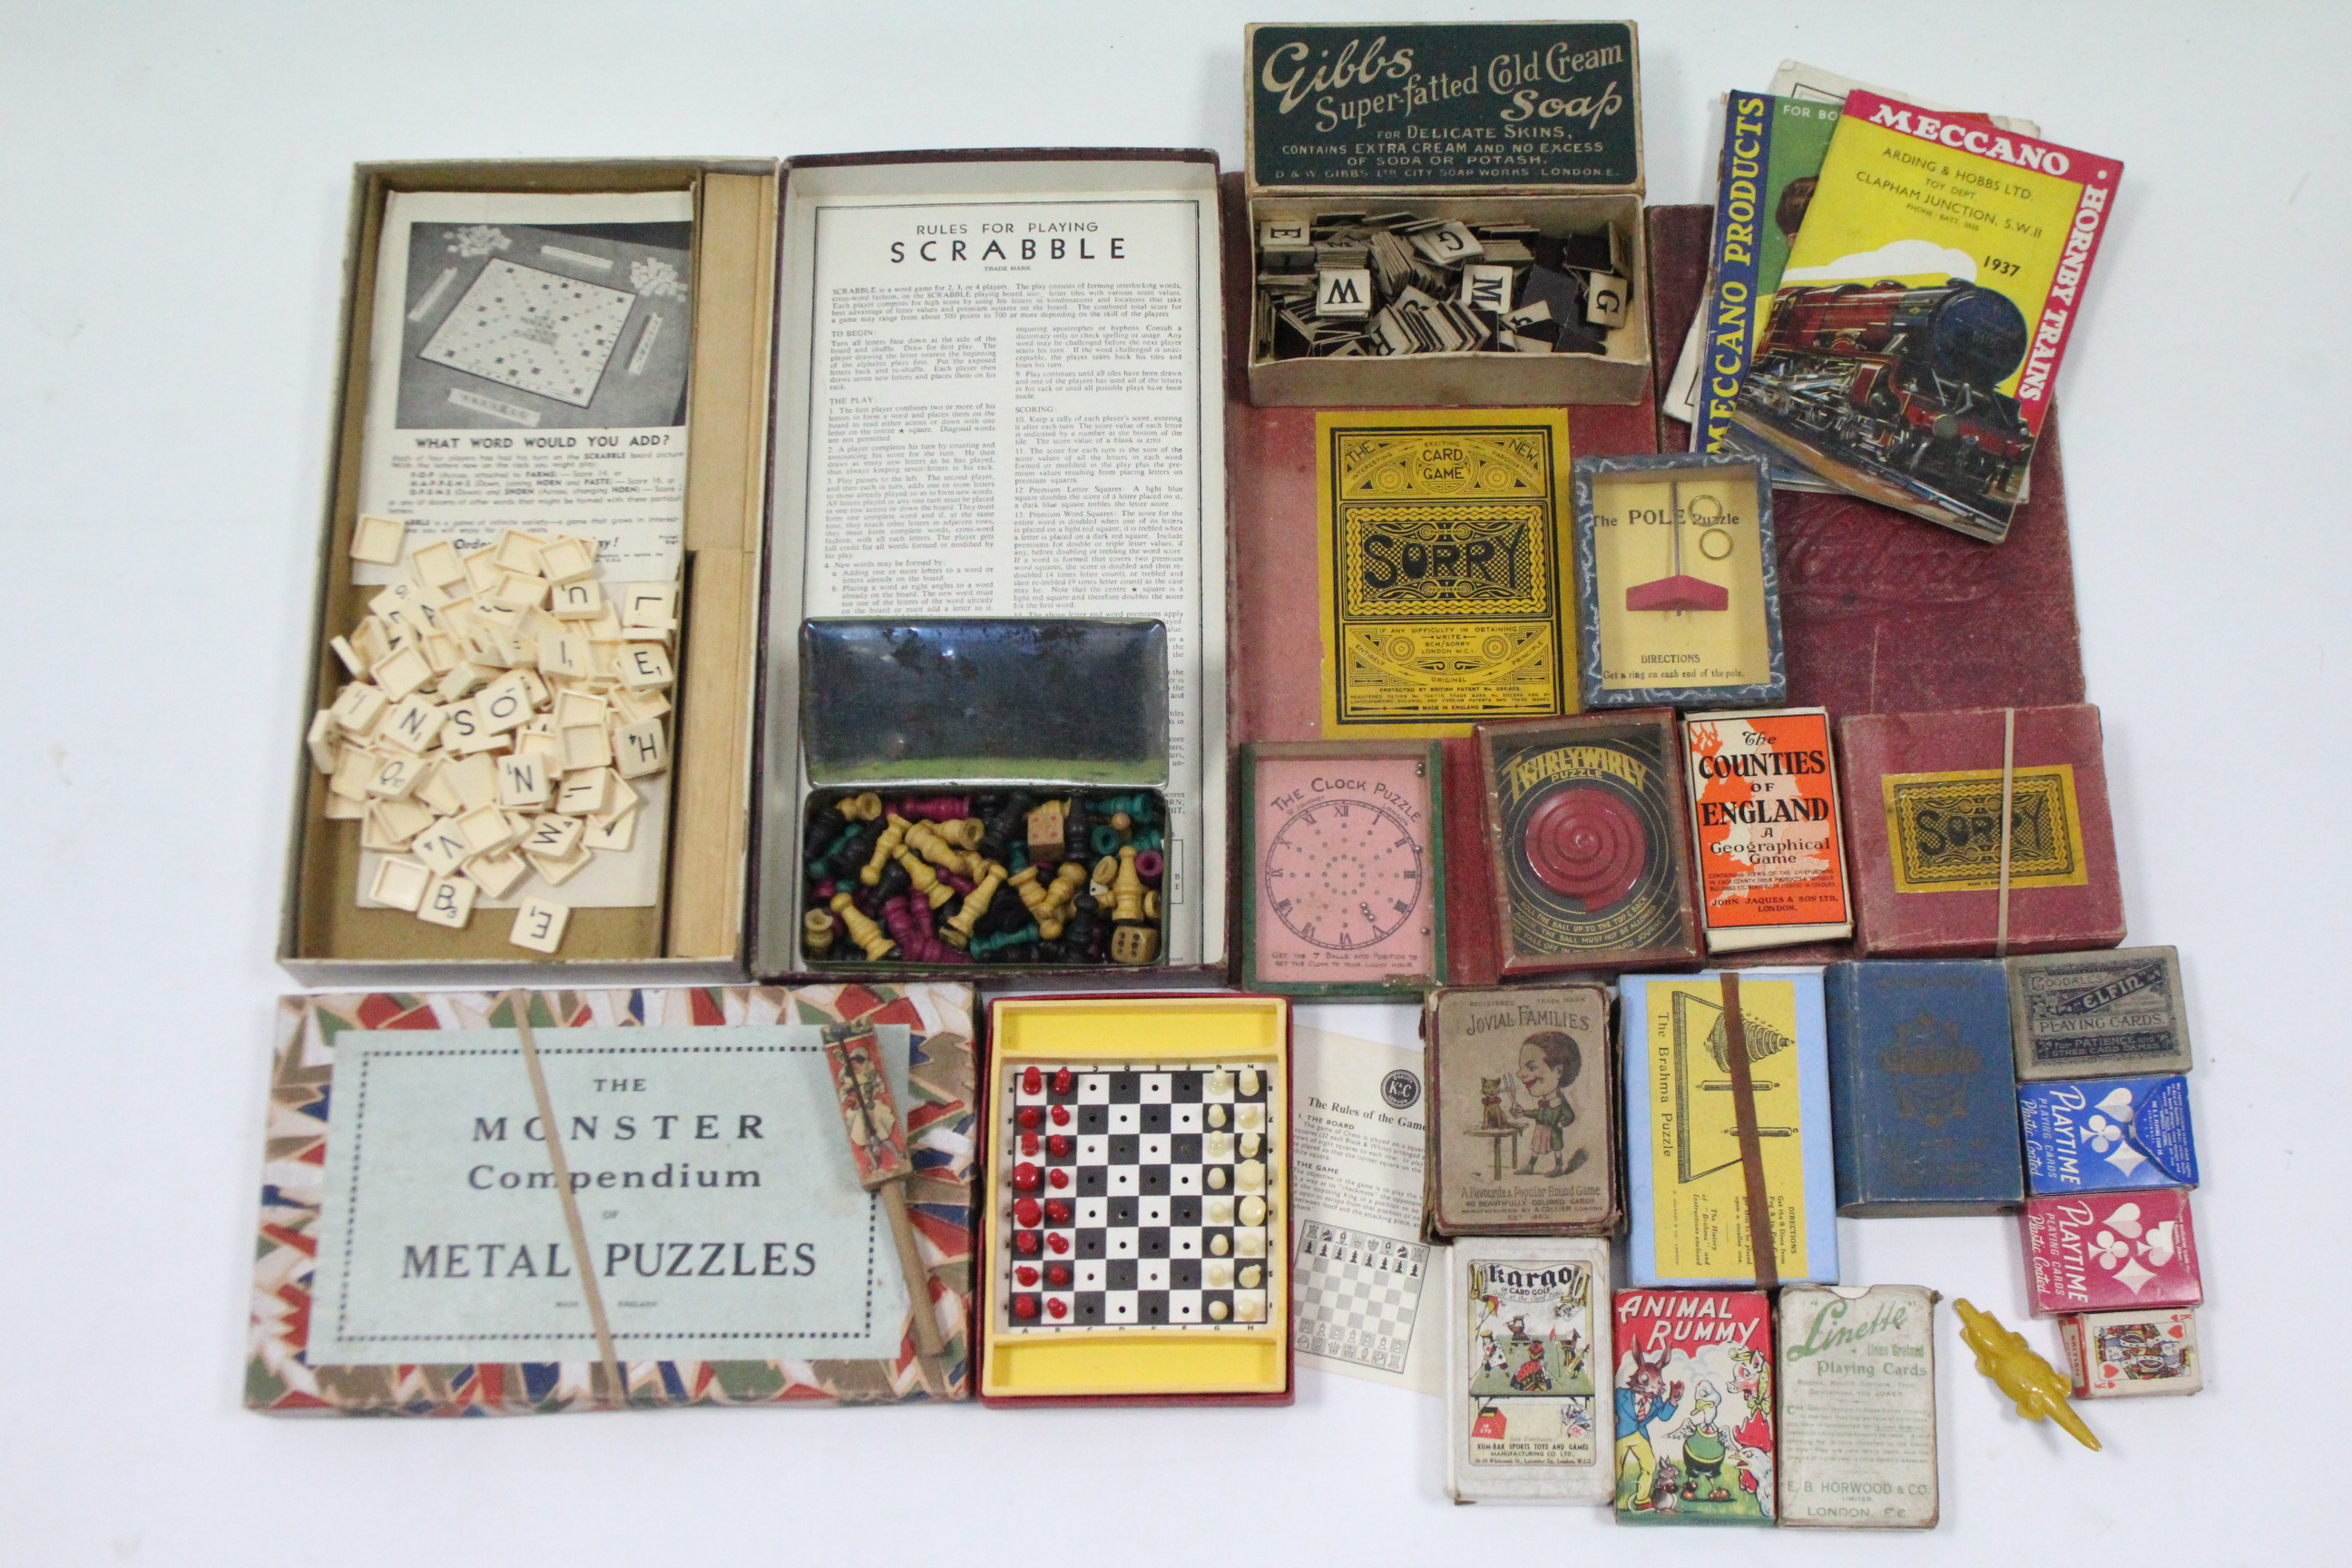 """Lot 282 - The Monster Compendium of Metal Puzzles"""", boxed, circa early-mid 20th century; together with various"""